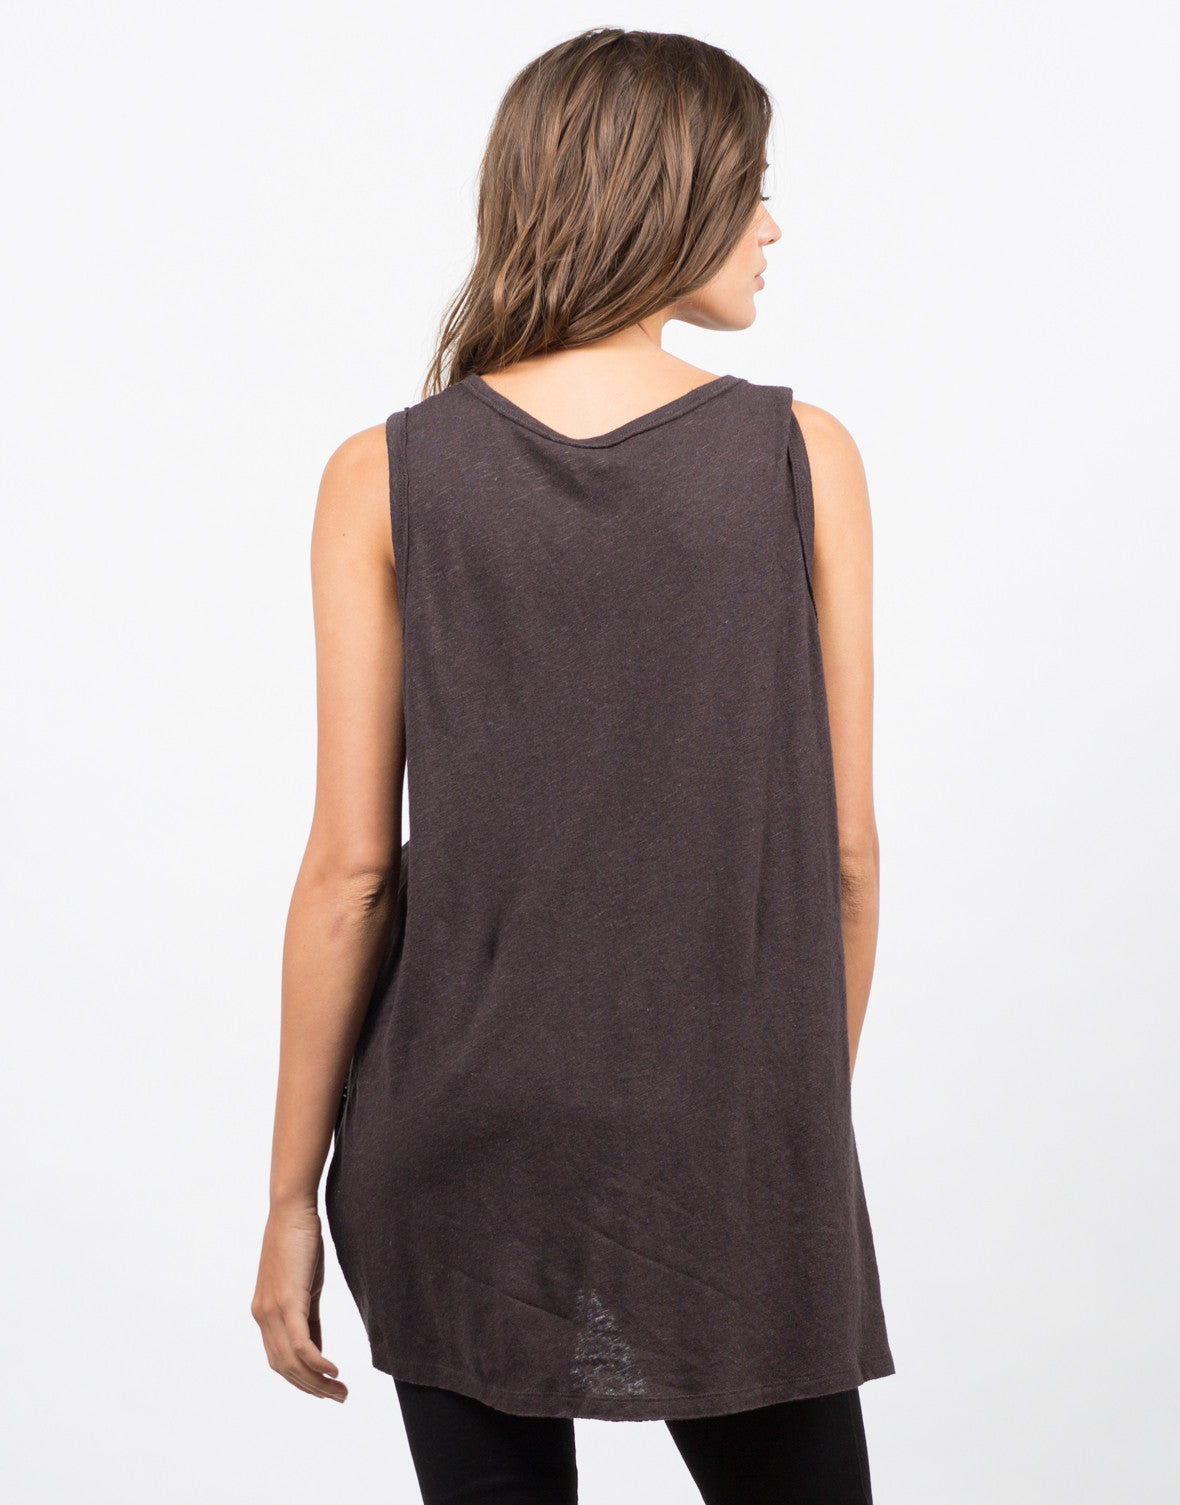 Back View of Pocket Slit Tank